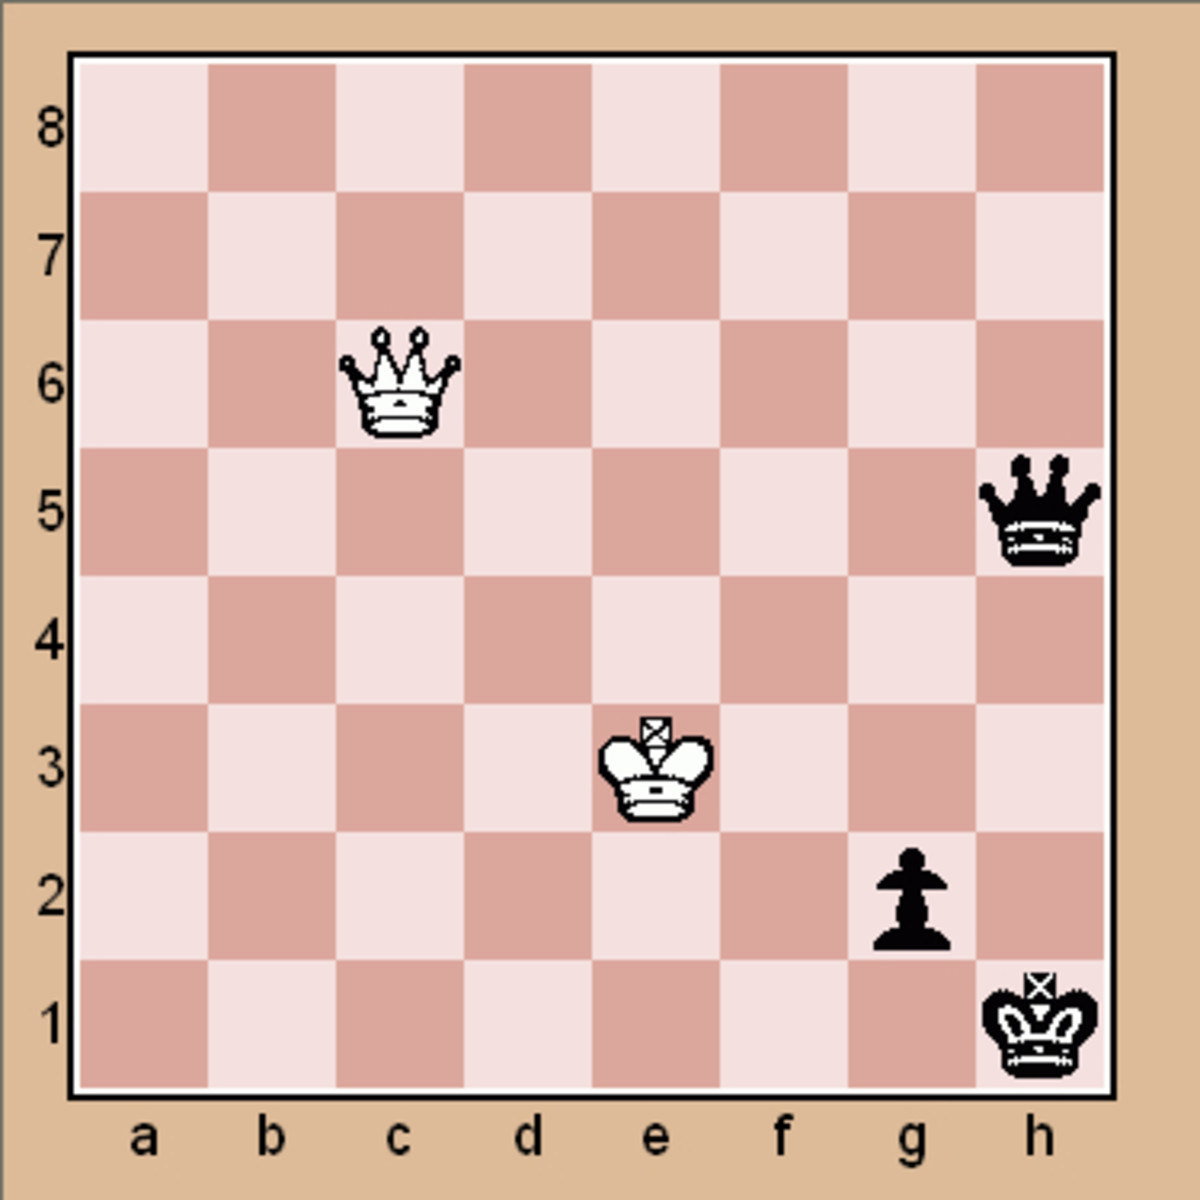 End game chess puzzle (Click to enlarge)